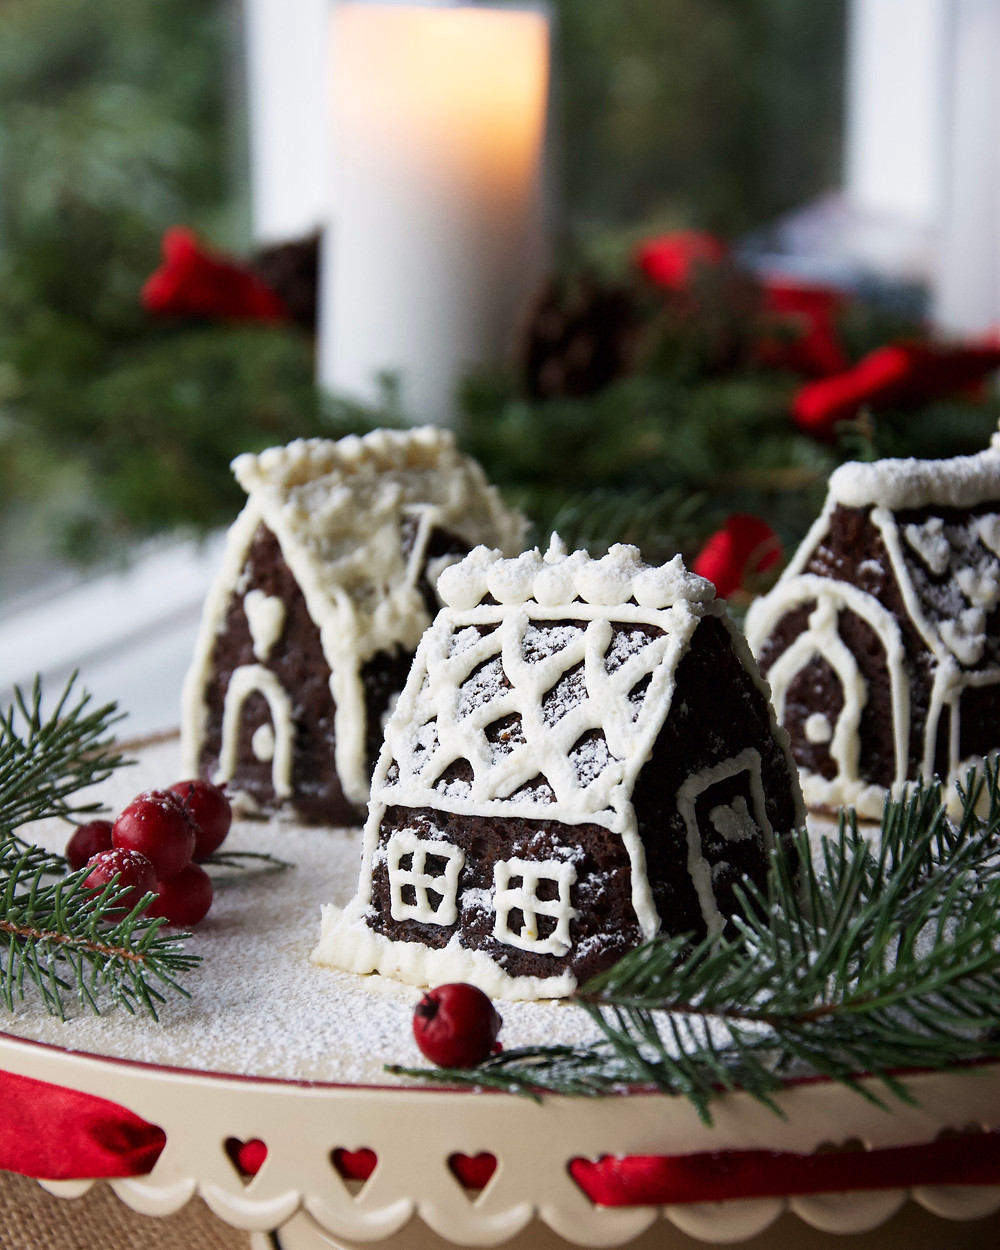 Mini Gingerbread Cake Village with Christmas candle in background.